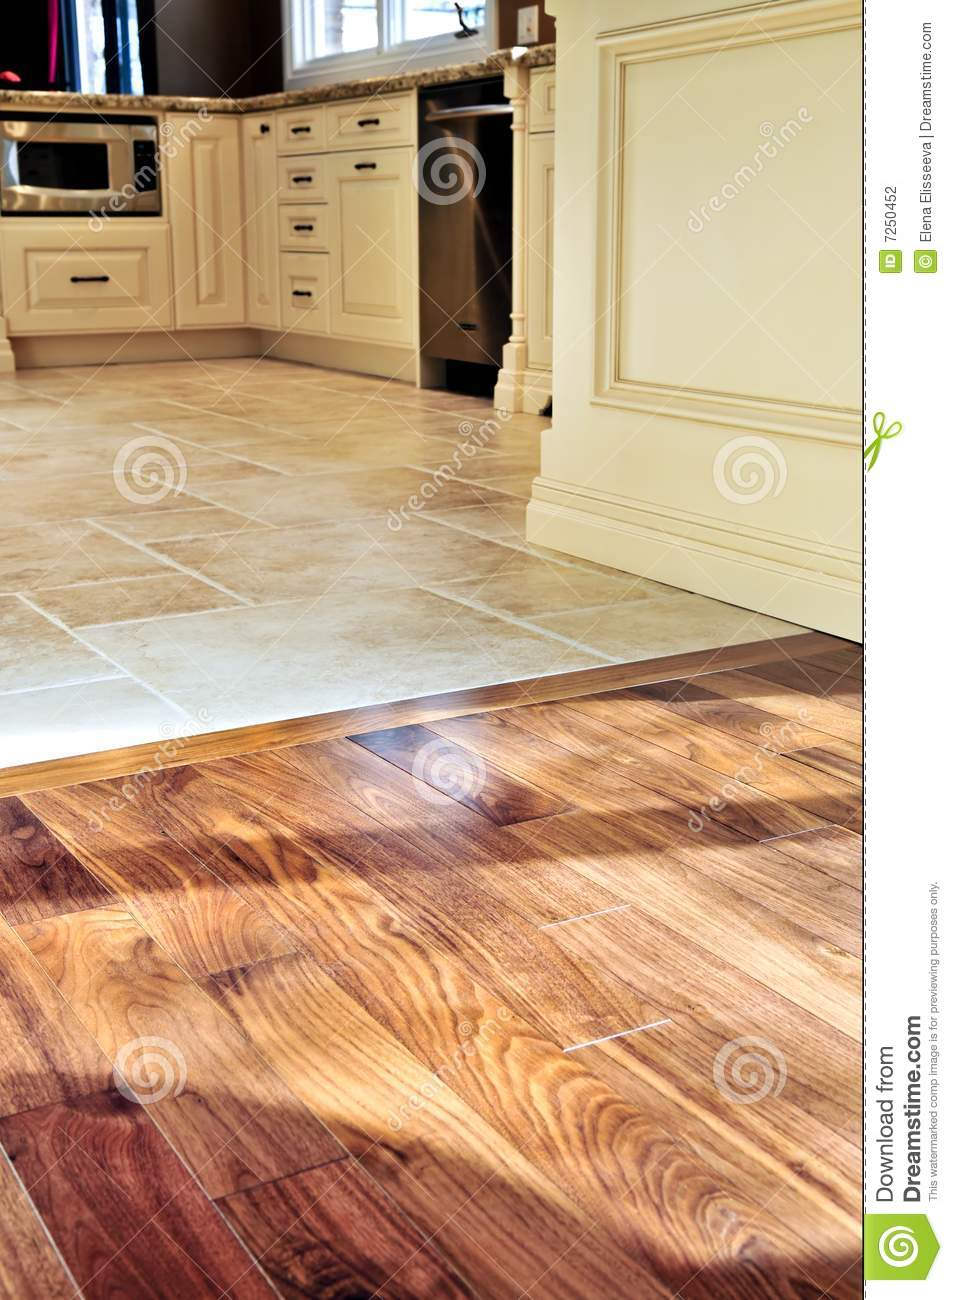 Hardwood and tile floor stock photography image 7250452 for At floor or on floor